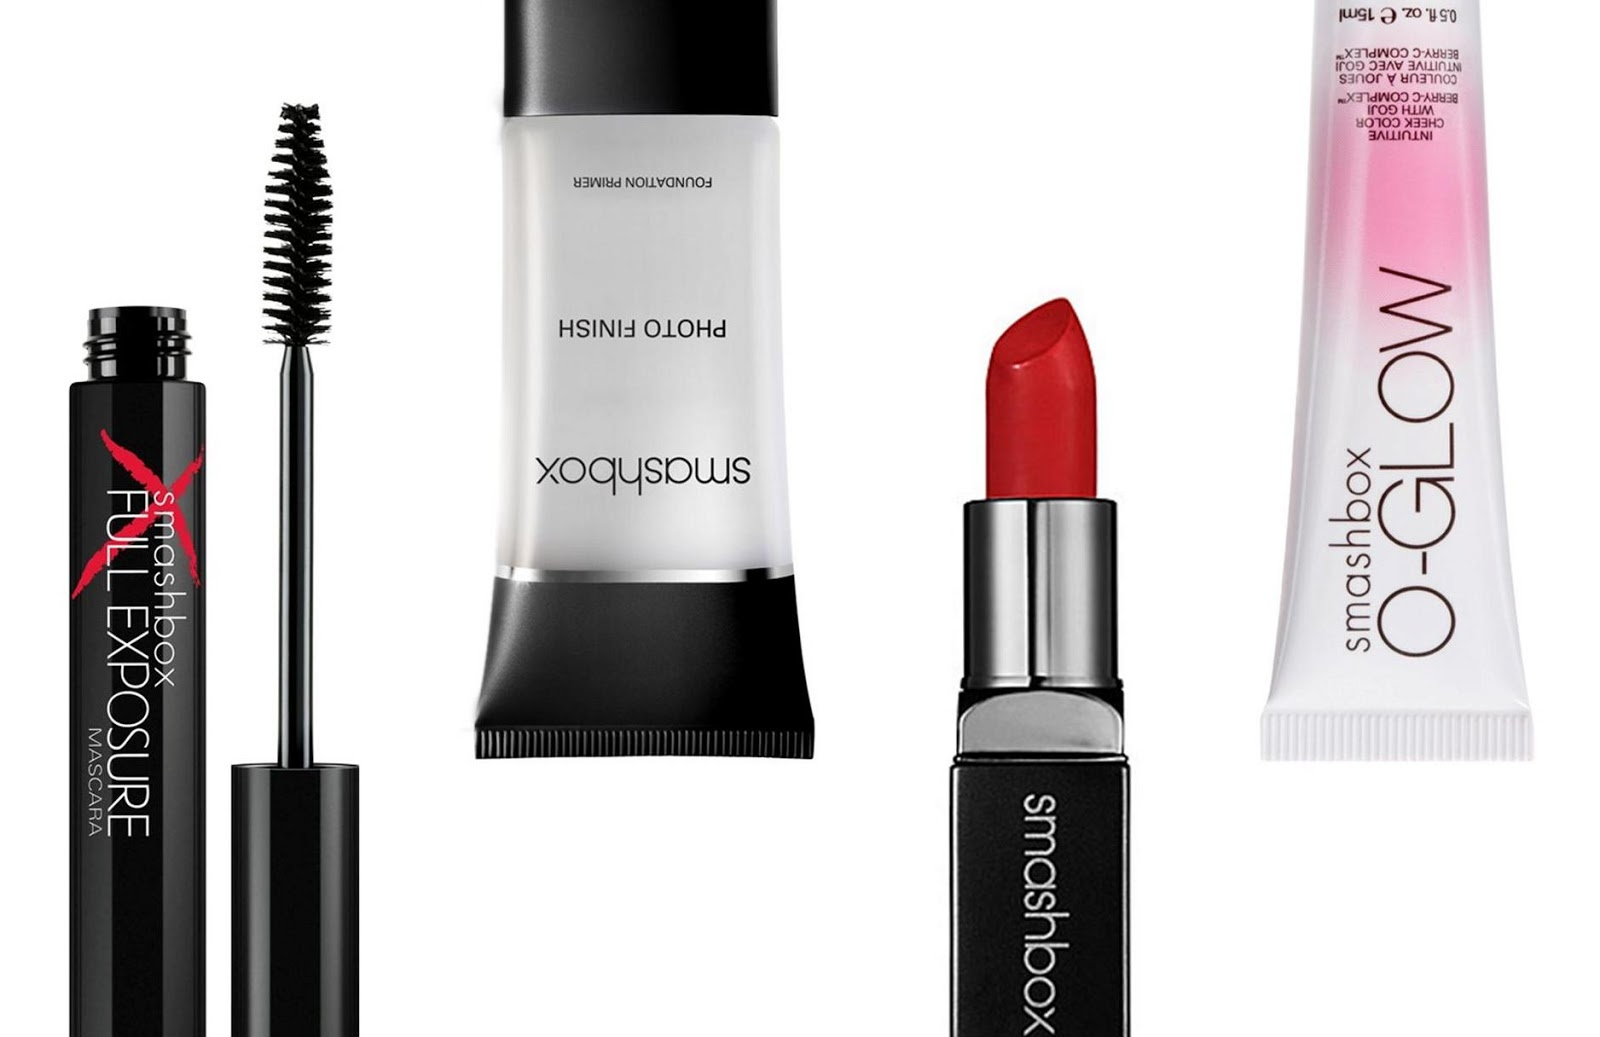 Smashbox Cosmetics, Smashbox Makeup, Smashbox Company Information